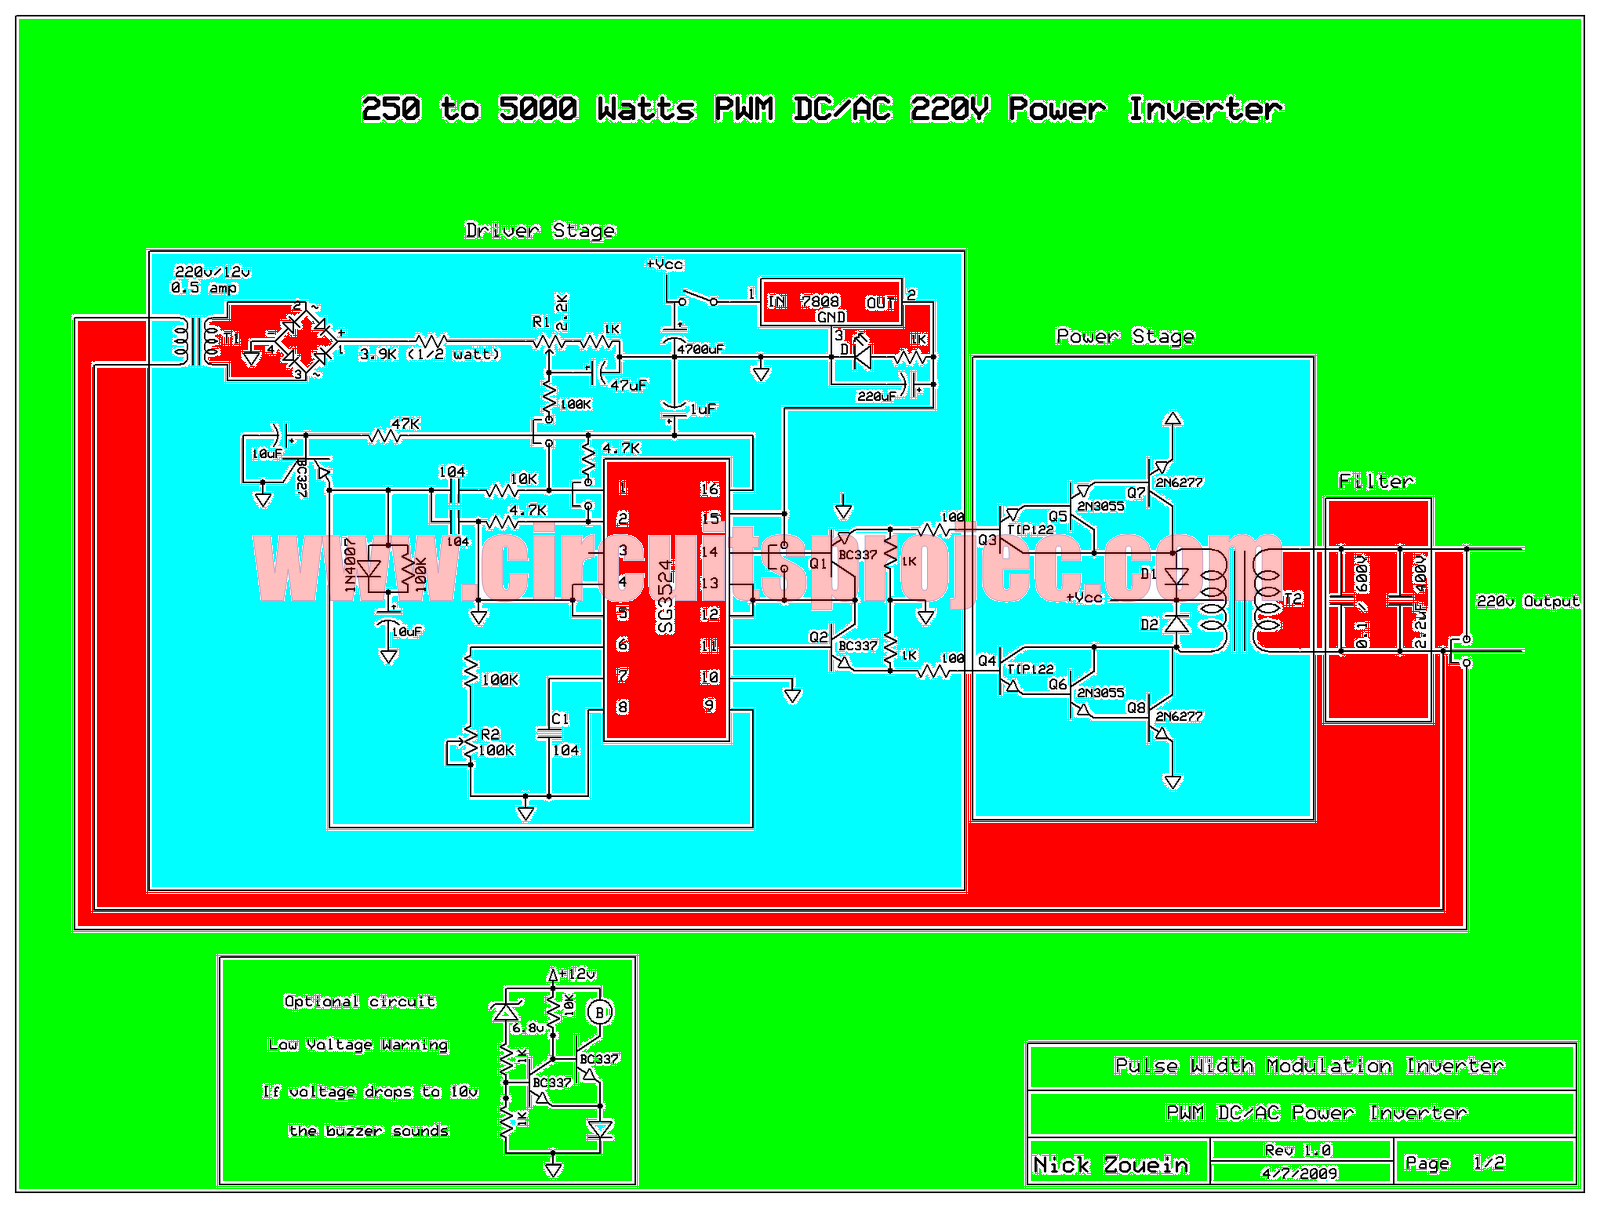 inverter 5000 watt pwm circuit diagram digital free elec circuits